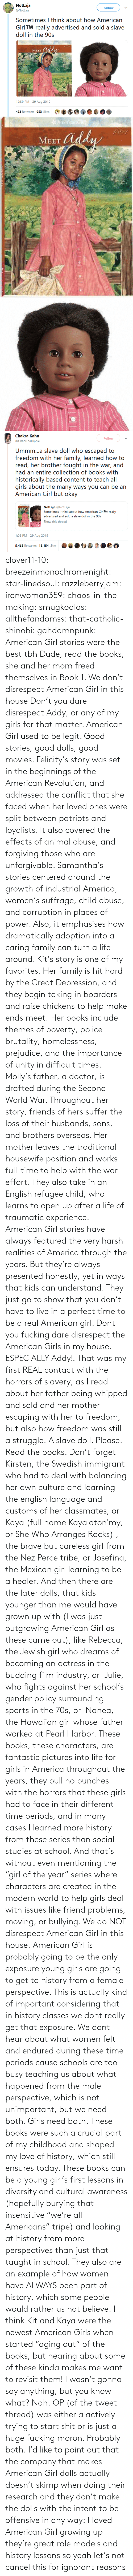 America, Books, and Doctor: clover11-10:  breezeinmonochromenight:  star-linedsoul:  razzleberryjam:  ironwoman359:  chaos-in-the-making:  smugkoalas:   allthefandomss:  that-catholic-shinobi:  gahdamnpunk: American Girl stories were the best tbh  Dude, read the books, she and her mom freed themselves in Book 1. We don't disrespect American Girl in this house    Don't you dare disrespect Addy, or any of my girls for that matter. American Girl used to be legit. Good stories, good dolls, good movies.    Felicity's story was set in the beginnings of the American Revolution, and addressed the conflict that she faced when her loved ones were split between patriots and loyalists. It also covered the effects of animal abuse, and forgiving those who are unforgivable.  Samantha's stories centered around the growth of industrial America, women's suffrage, child abuse, and corruption in places of power. Also, it emphasises how dramatically adoption into a caring family can turn a life around.  Kit's story is one of my favorites. Her family is hit hard by the Great Depression, and they begin taking in boarders and raise chickens to help make ends meet. Her books include themes of poverty, police brutality, homelessness, prejudice, and the importance of unity in difficult times.  Molly's father, a doctor, is drafted during the Second World War. Throughout her story, friends of hers suffer the loss of their husbands, sons, and brothers overseas. Her mother leaves the traditional housewife position and works full-time to help with the war effort. They also take in an English refugee child, who learns to open up after a life of traumatic experience.  American Girl stories have always featured the very harsh realities of America through the years. But they're always presented honestly, yet in ways that kids can understand. They just go to show that you don't have to live in a perfect time to be a real American girl.    Dont you fucking dare disrespect the American Girls in my house.